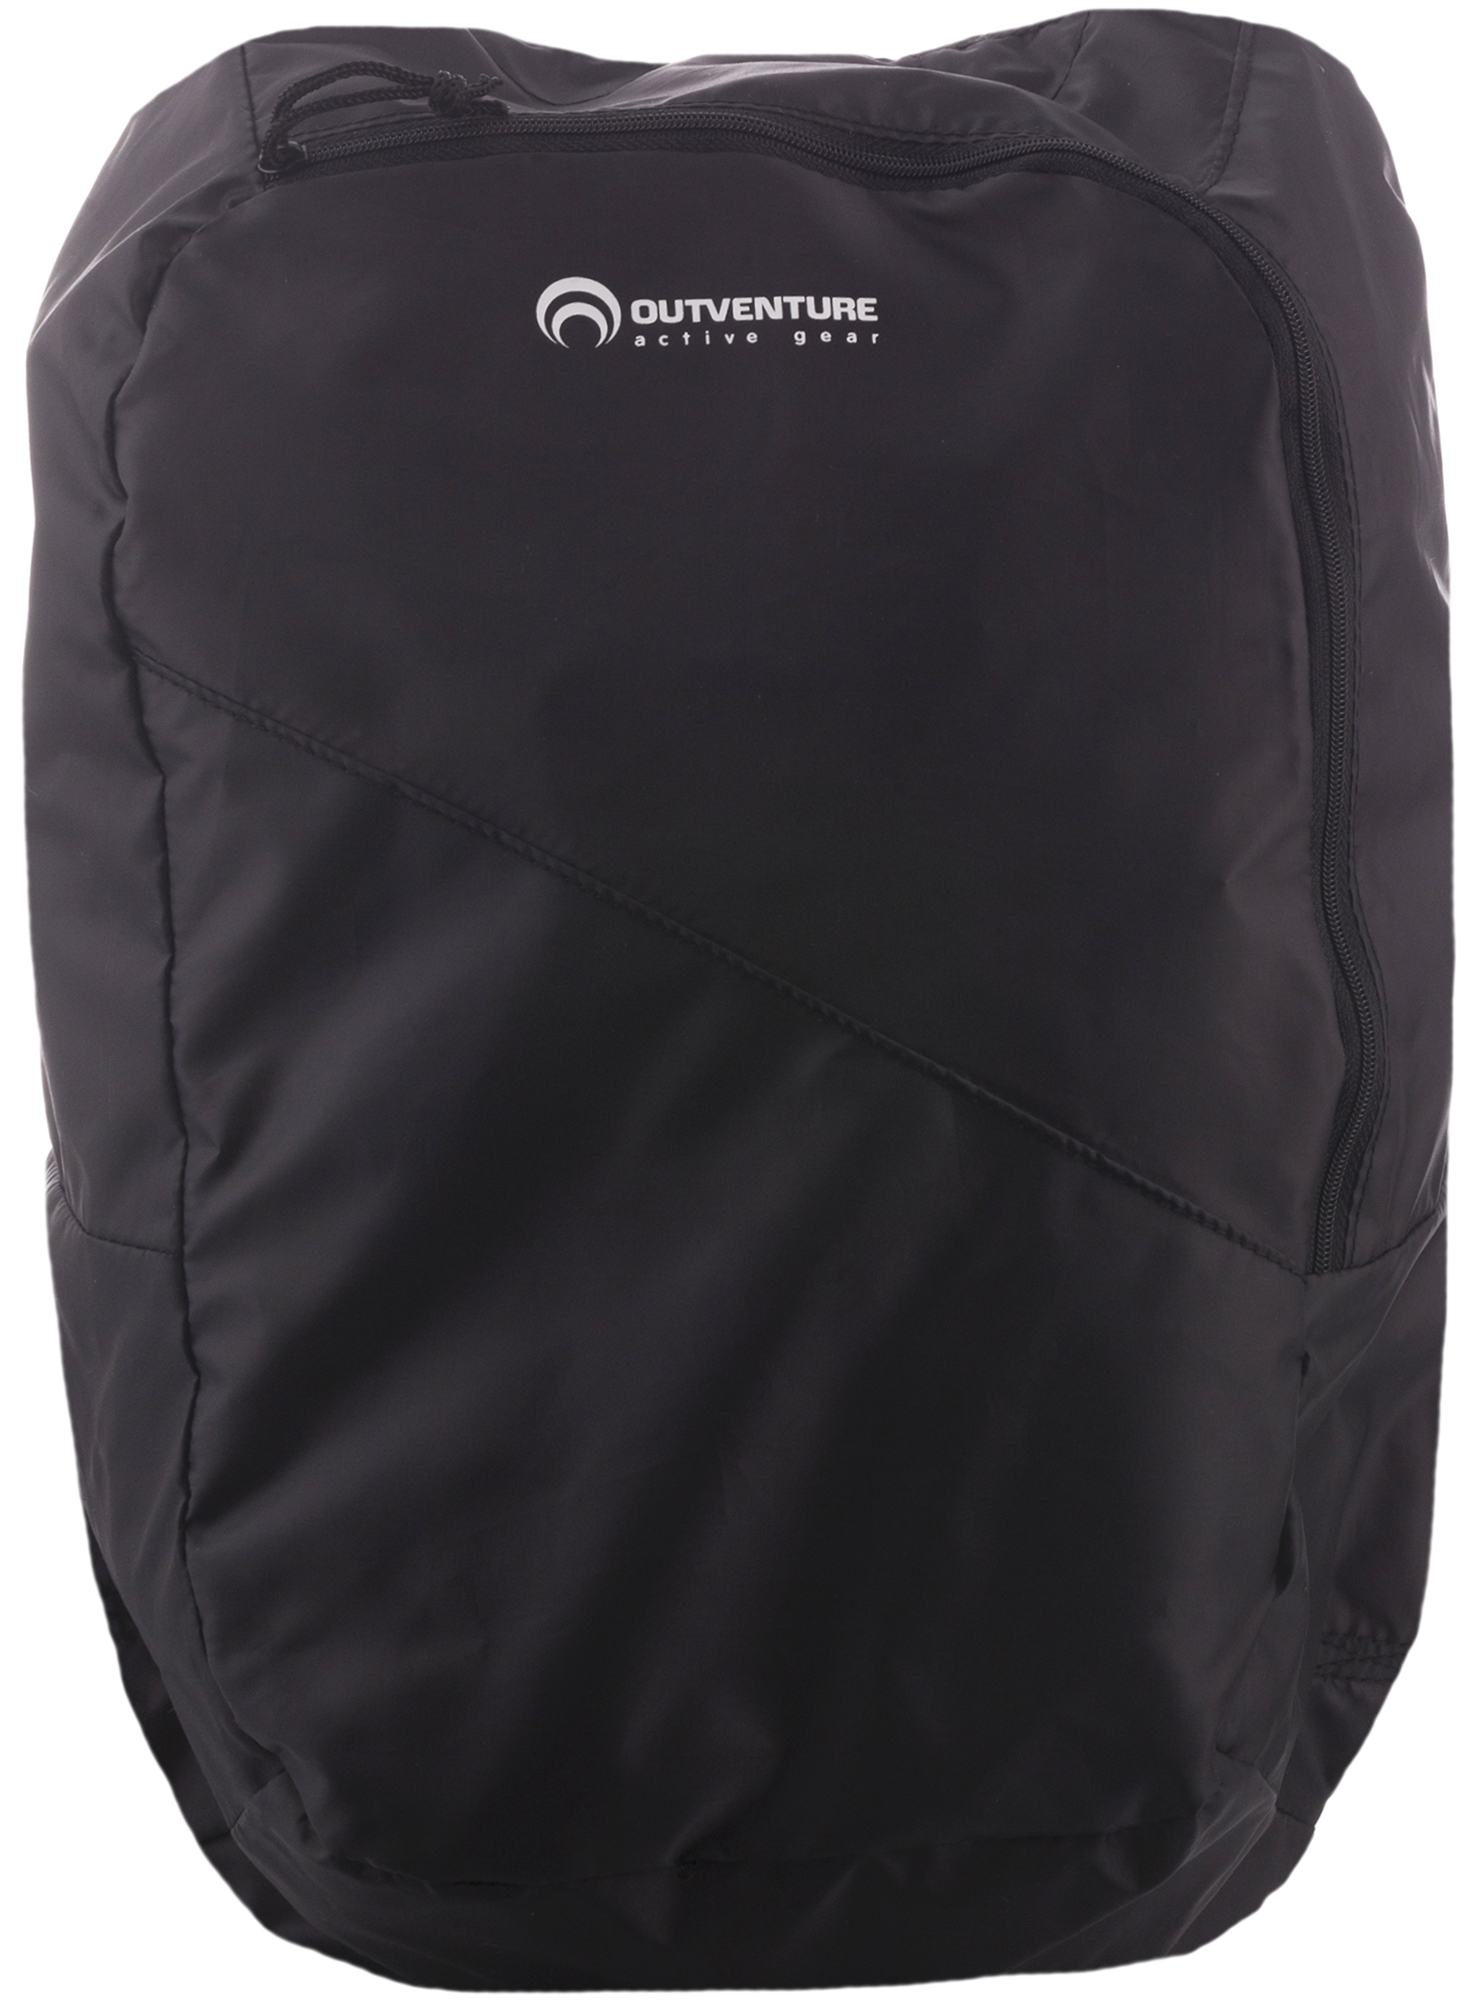 Outventure Outventure Folding backpack 14